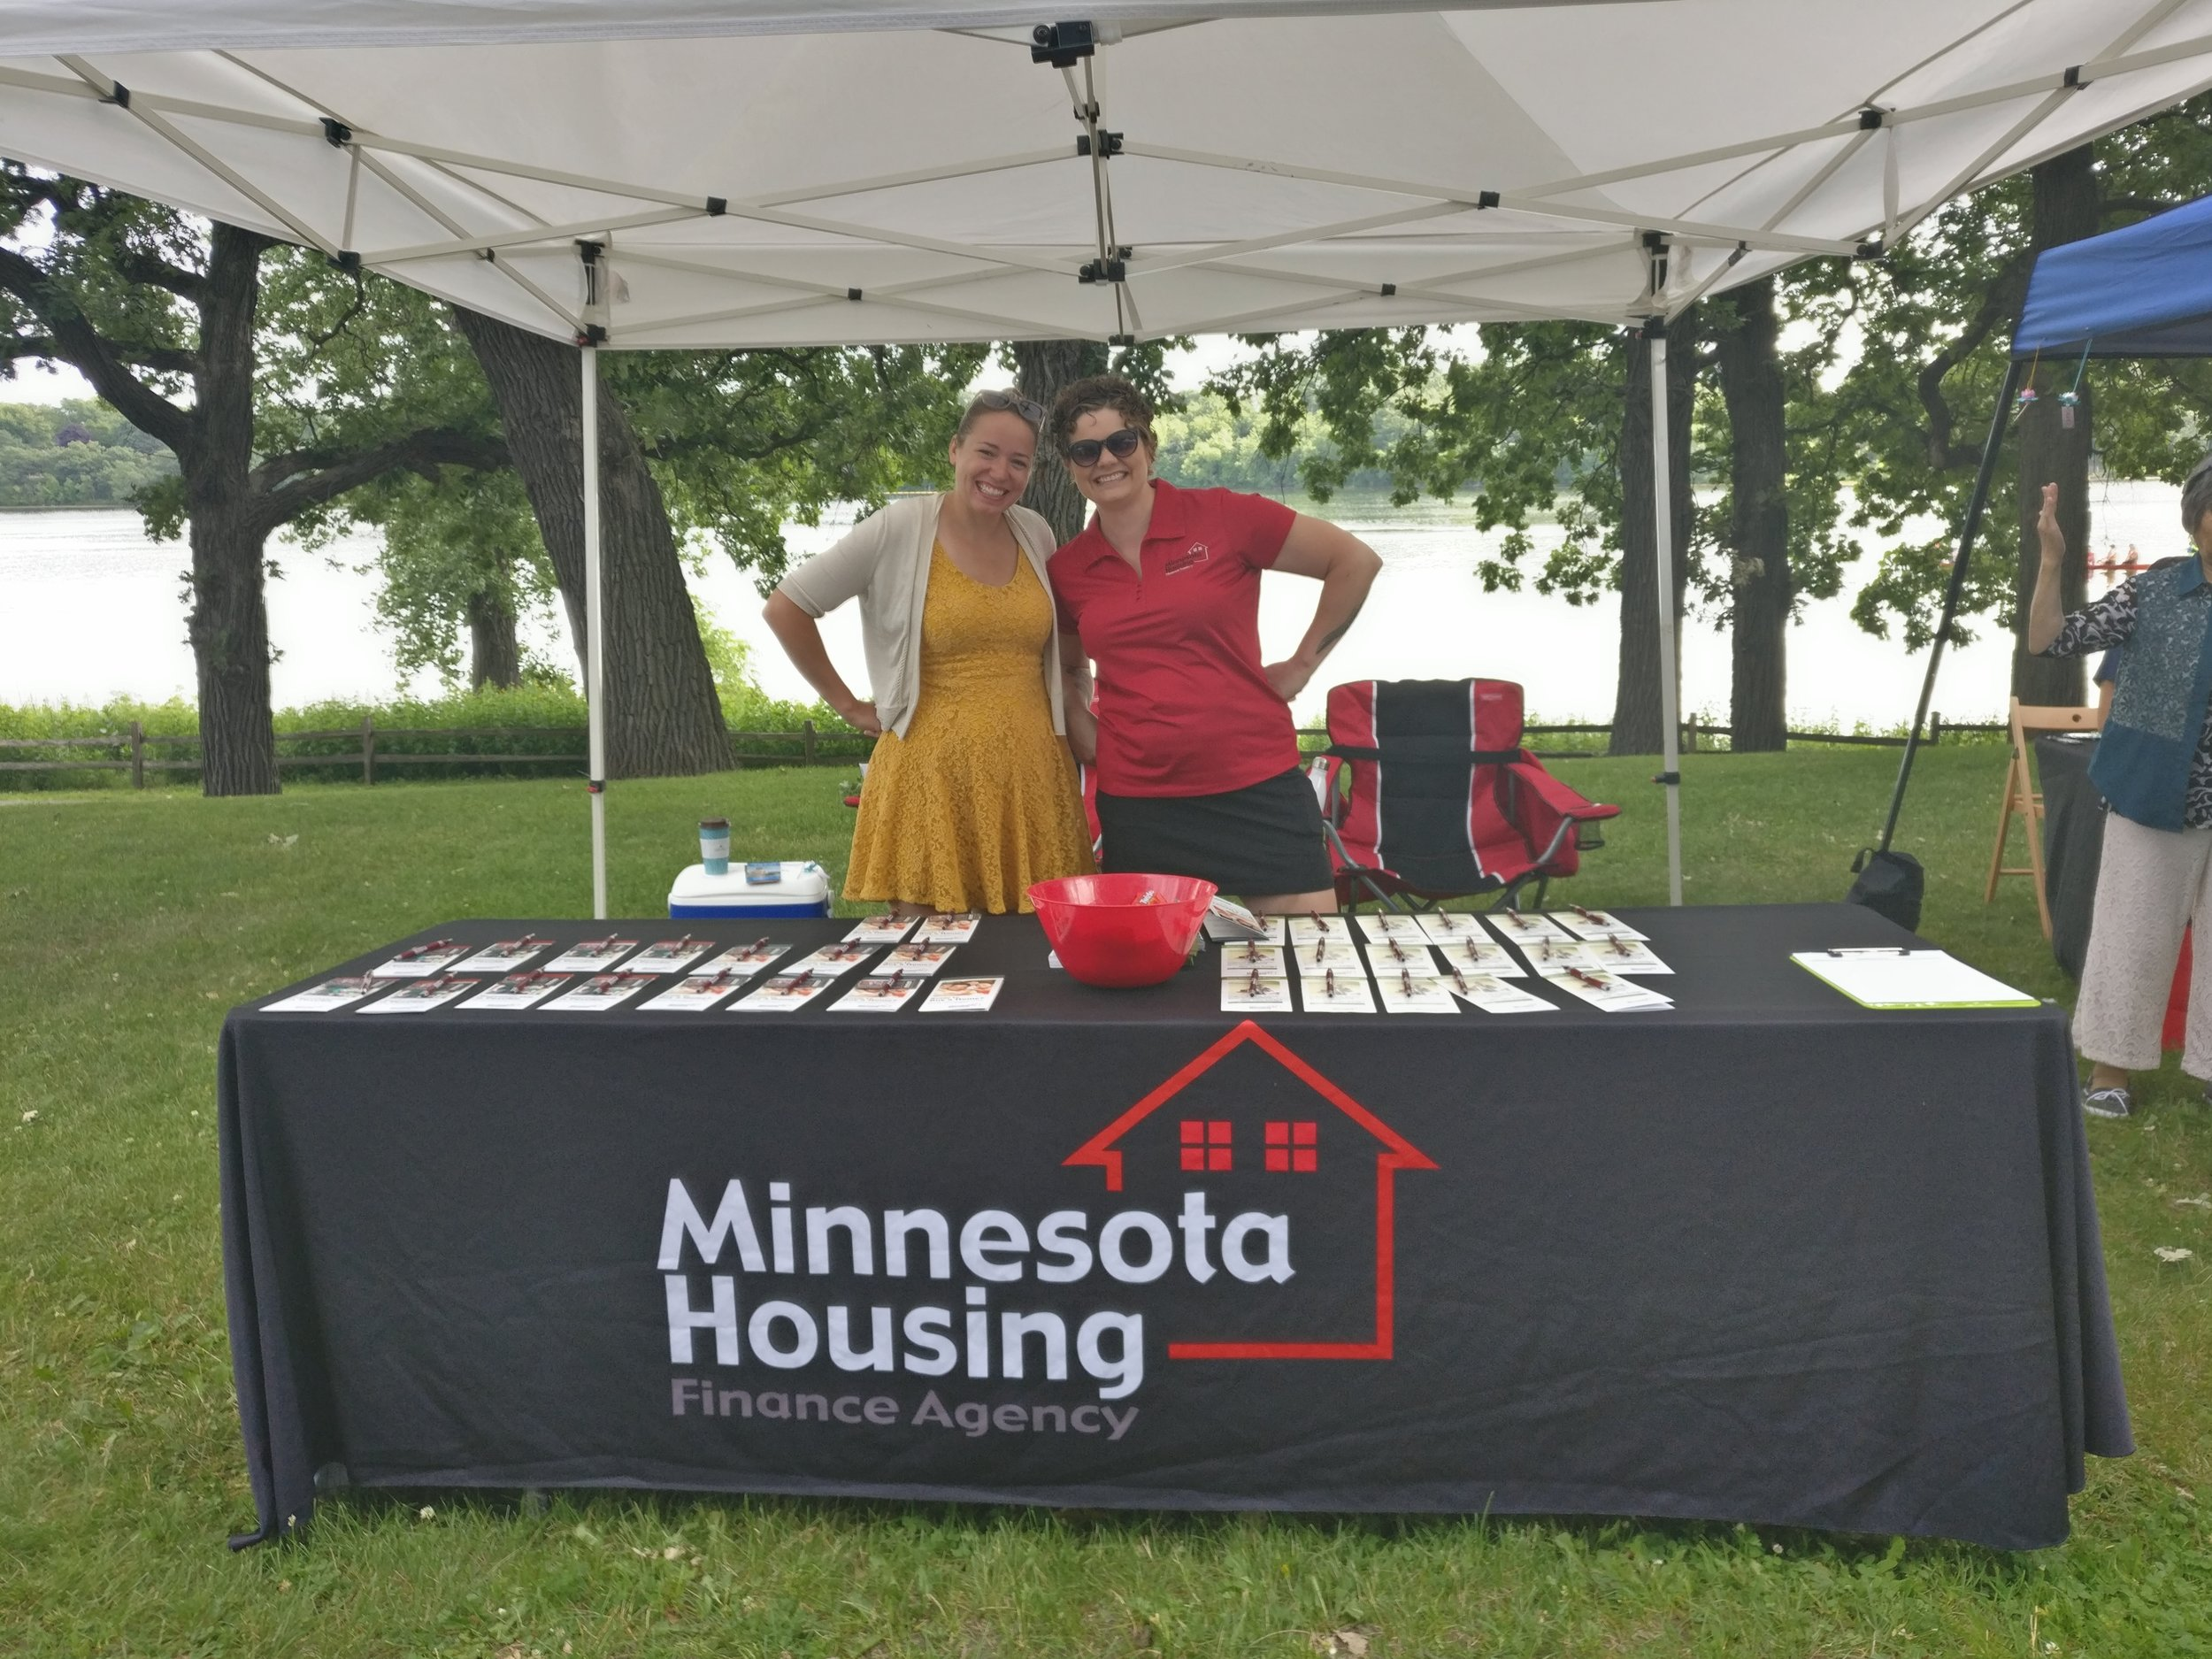 Talking about affordable home ownership with Minnesota Housing at the Dragon Boat Festival